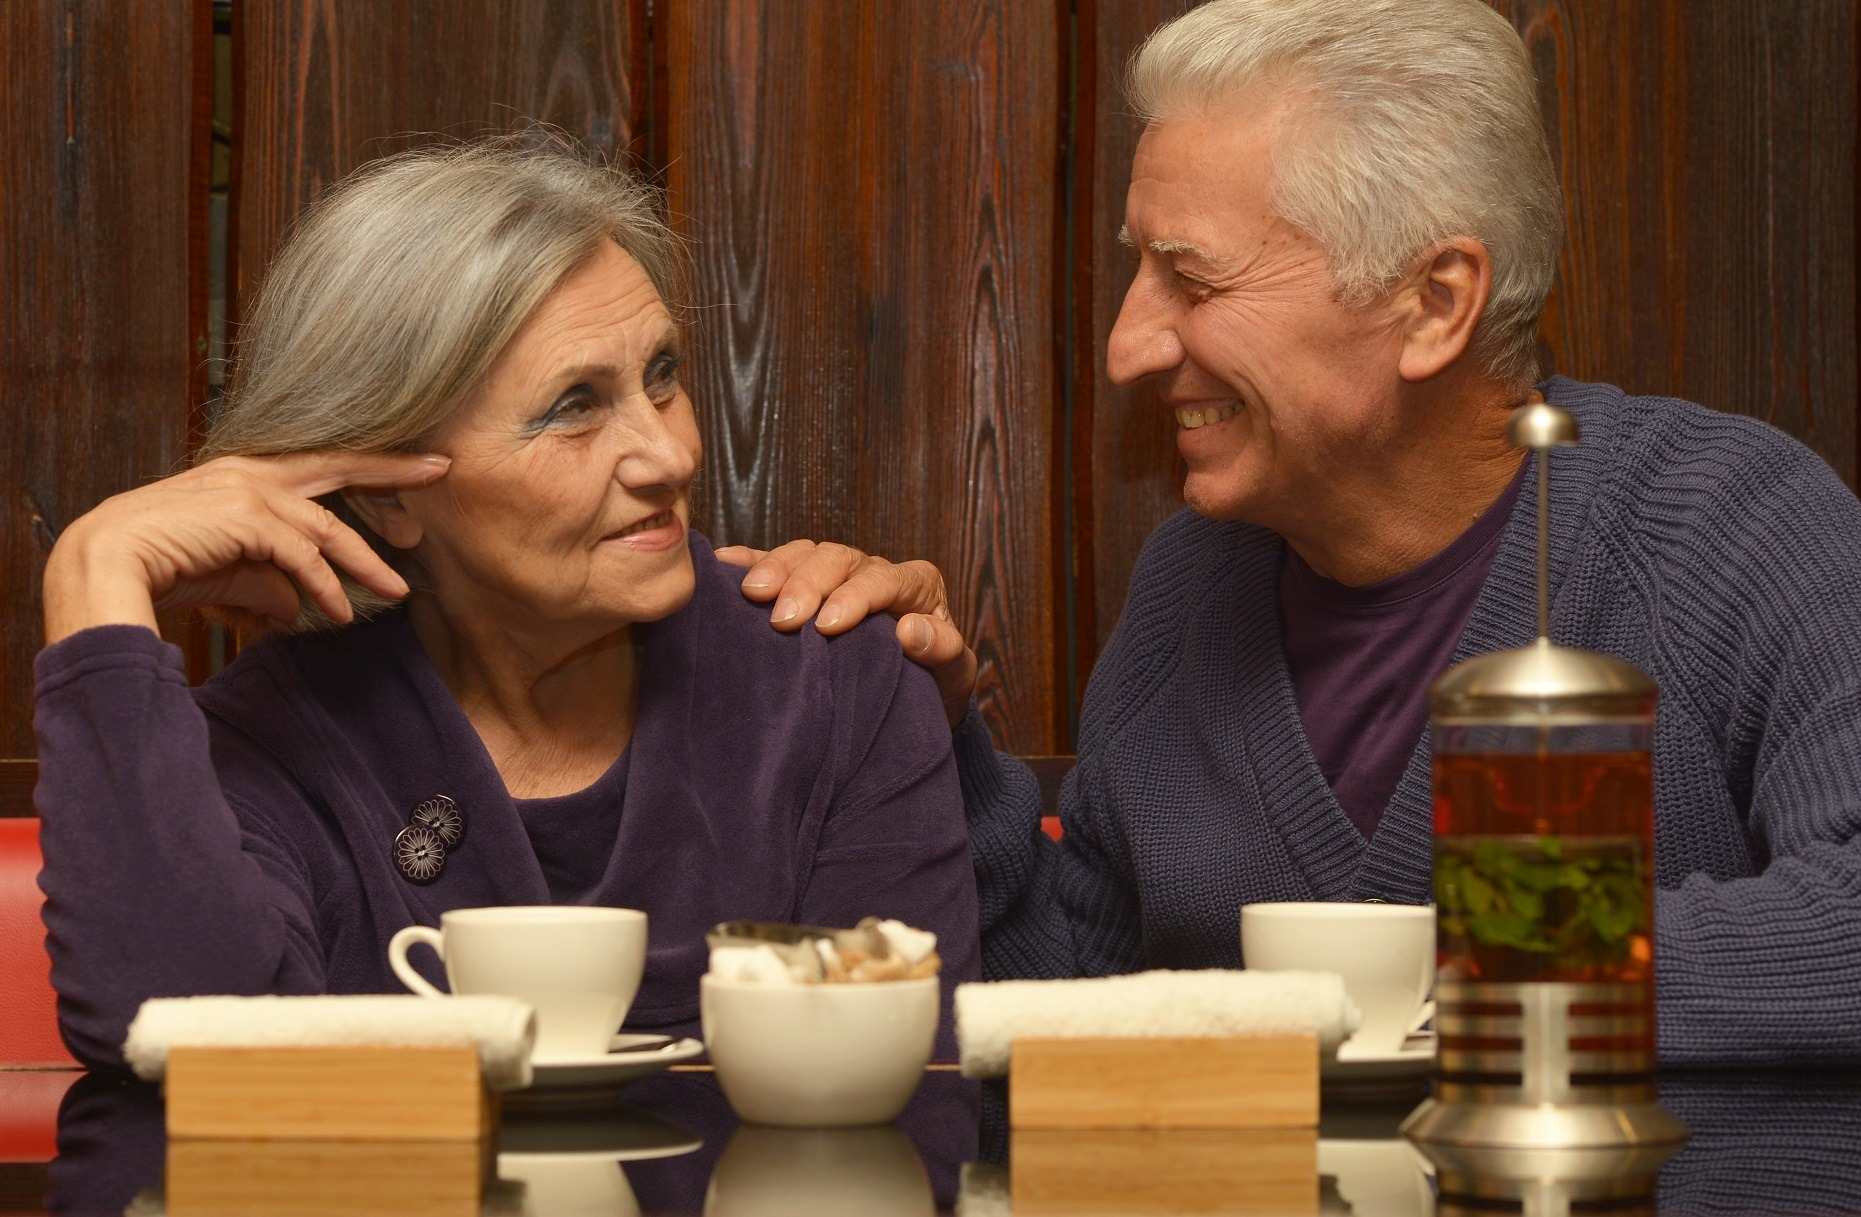 advice on dating over 50